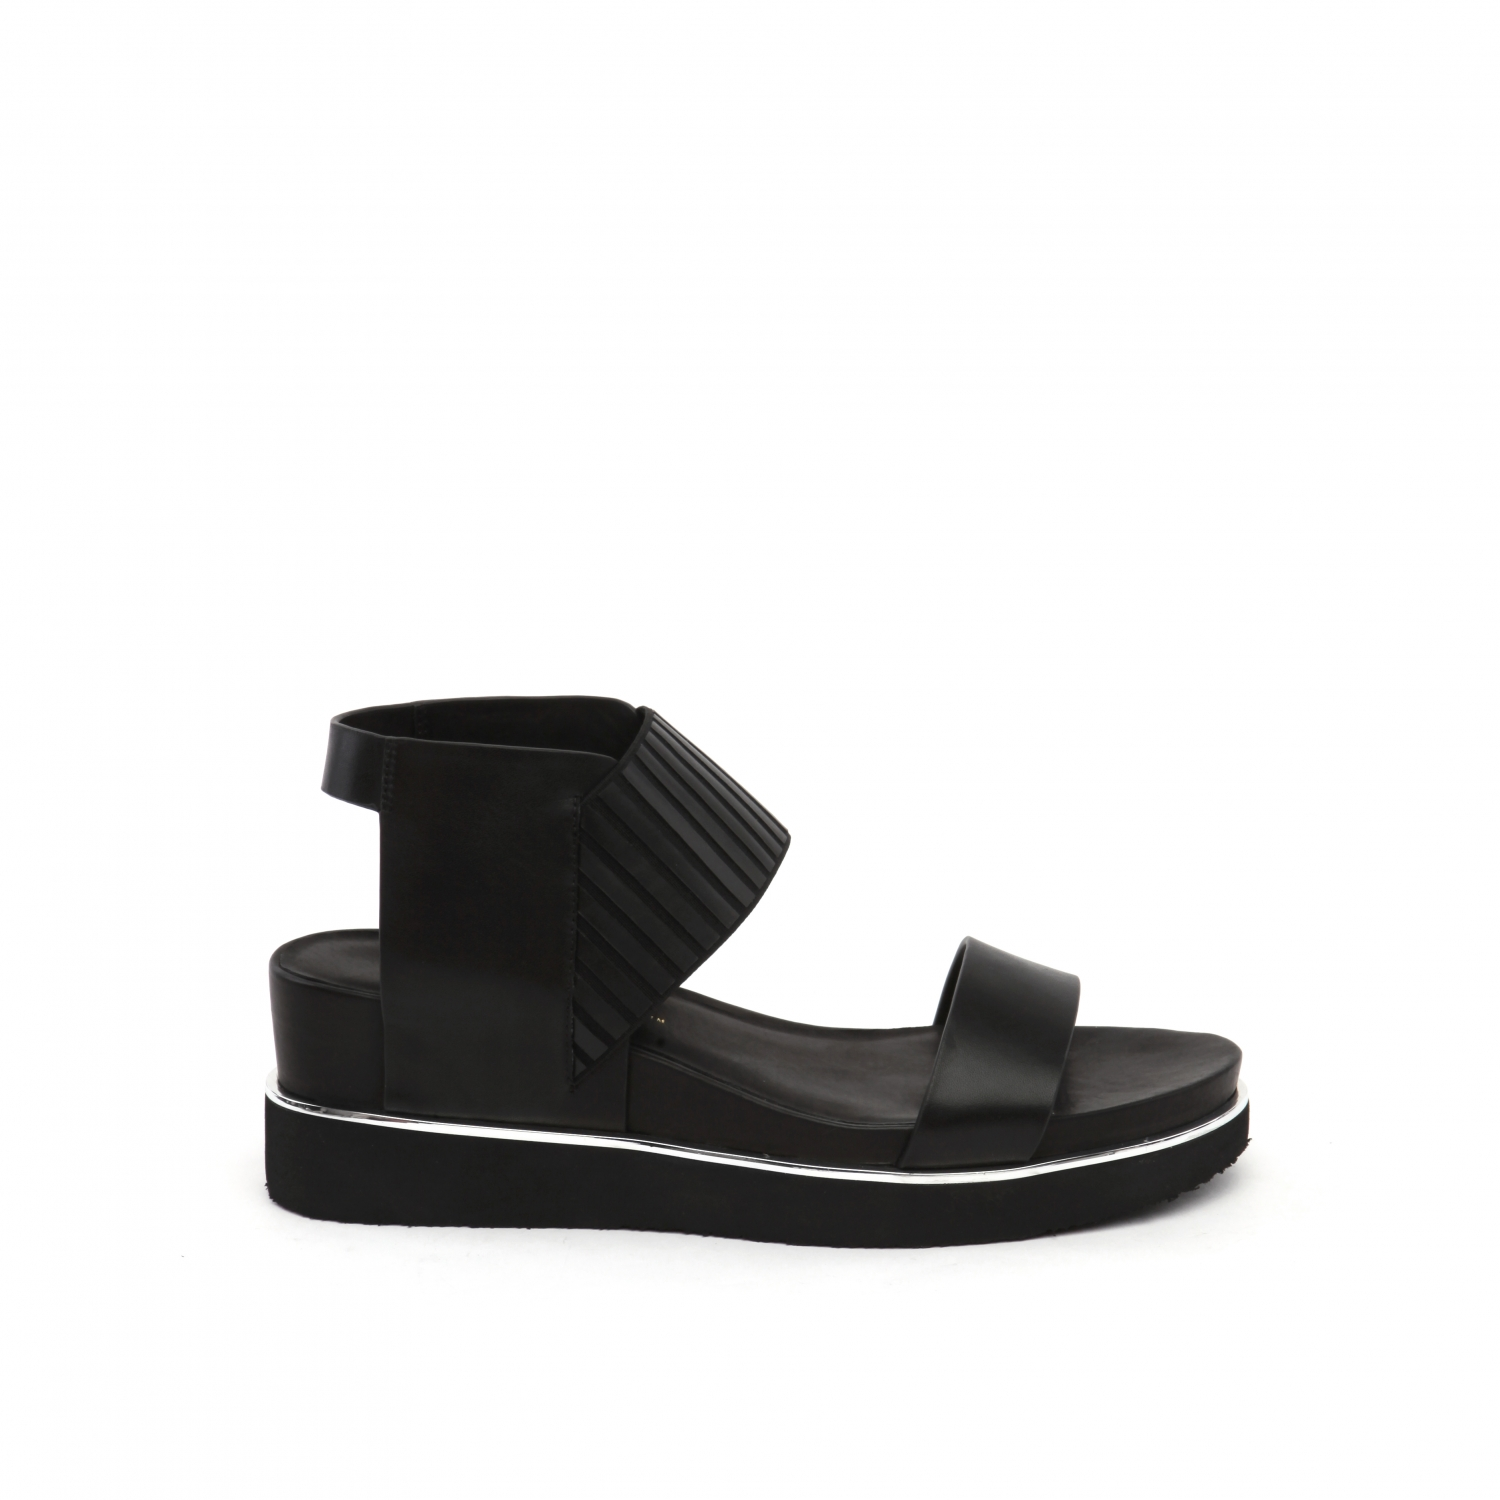 United Nude Rico Sandal Black Speckle - Issimo Shoes